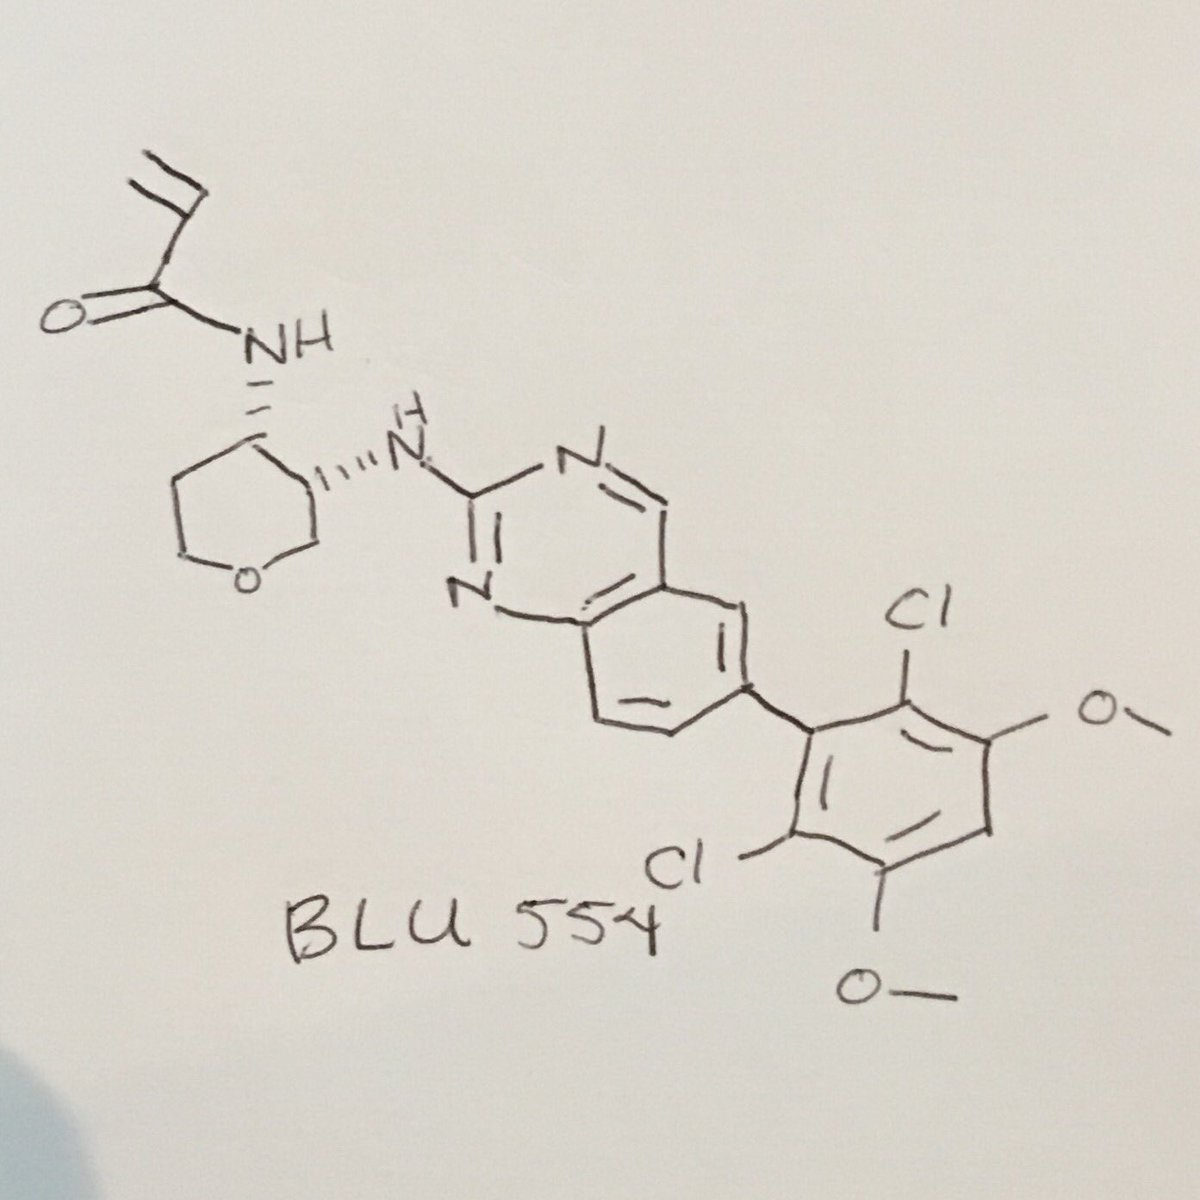 Blu 554 new drug approvals str0 malvernweather Choice Image